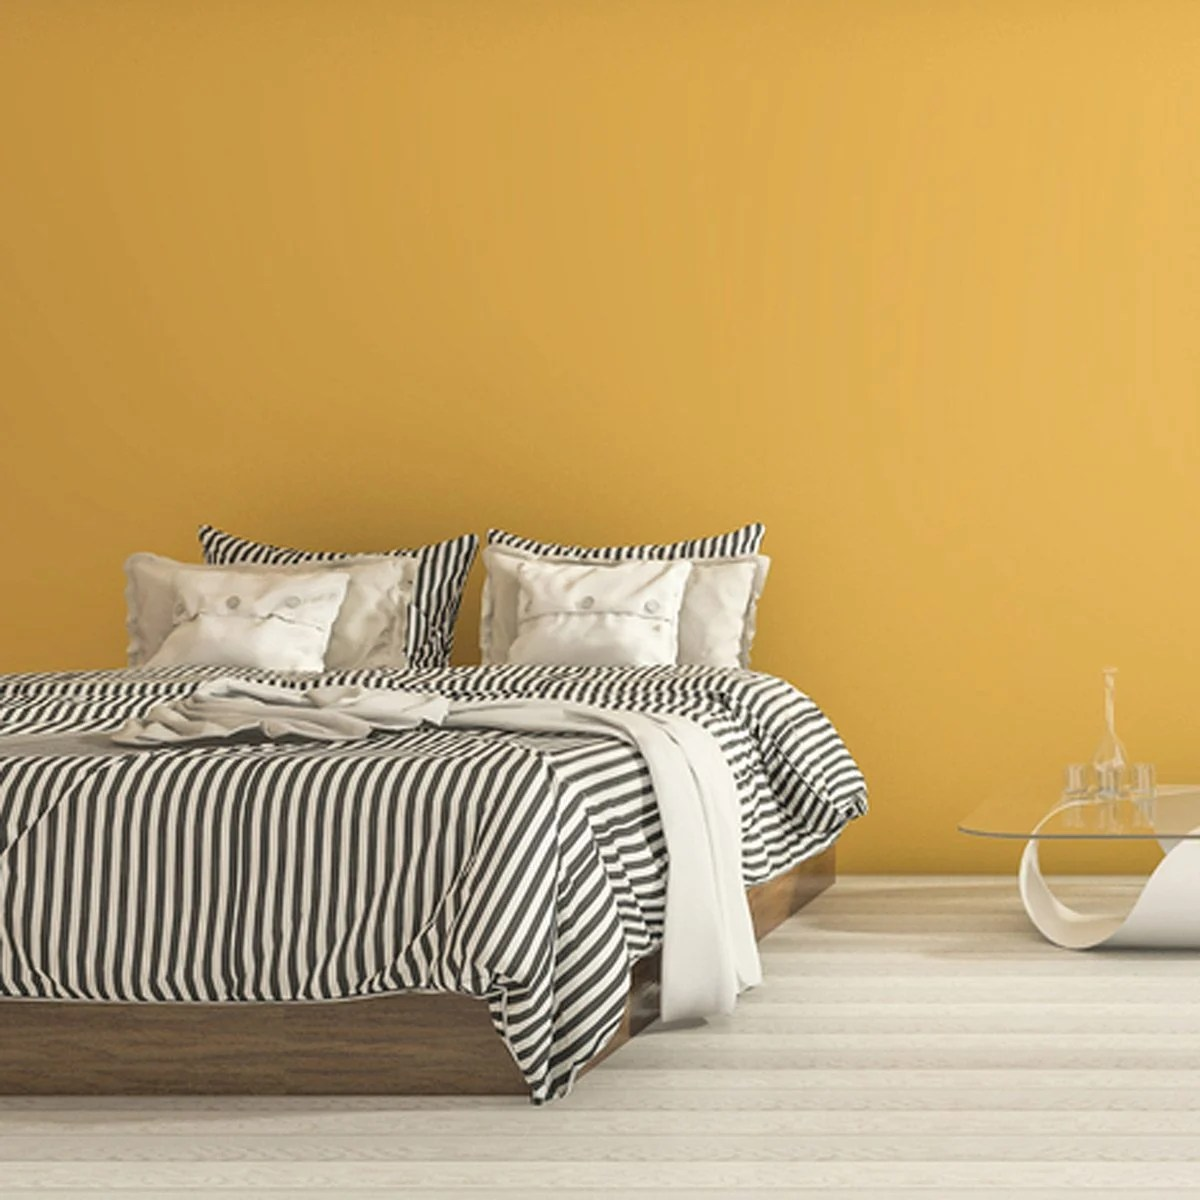 12 Fresh Bedroom Color Trends The Family Handyman